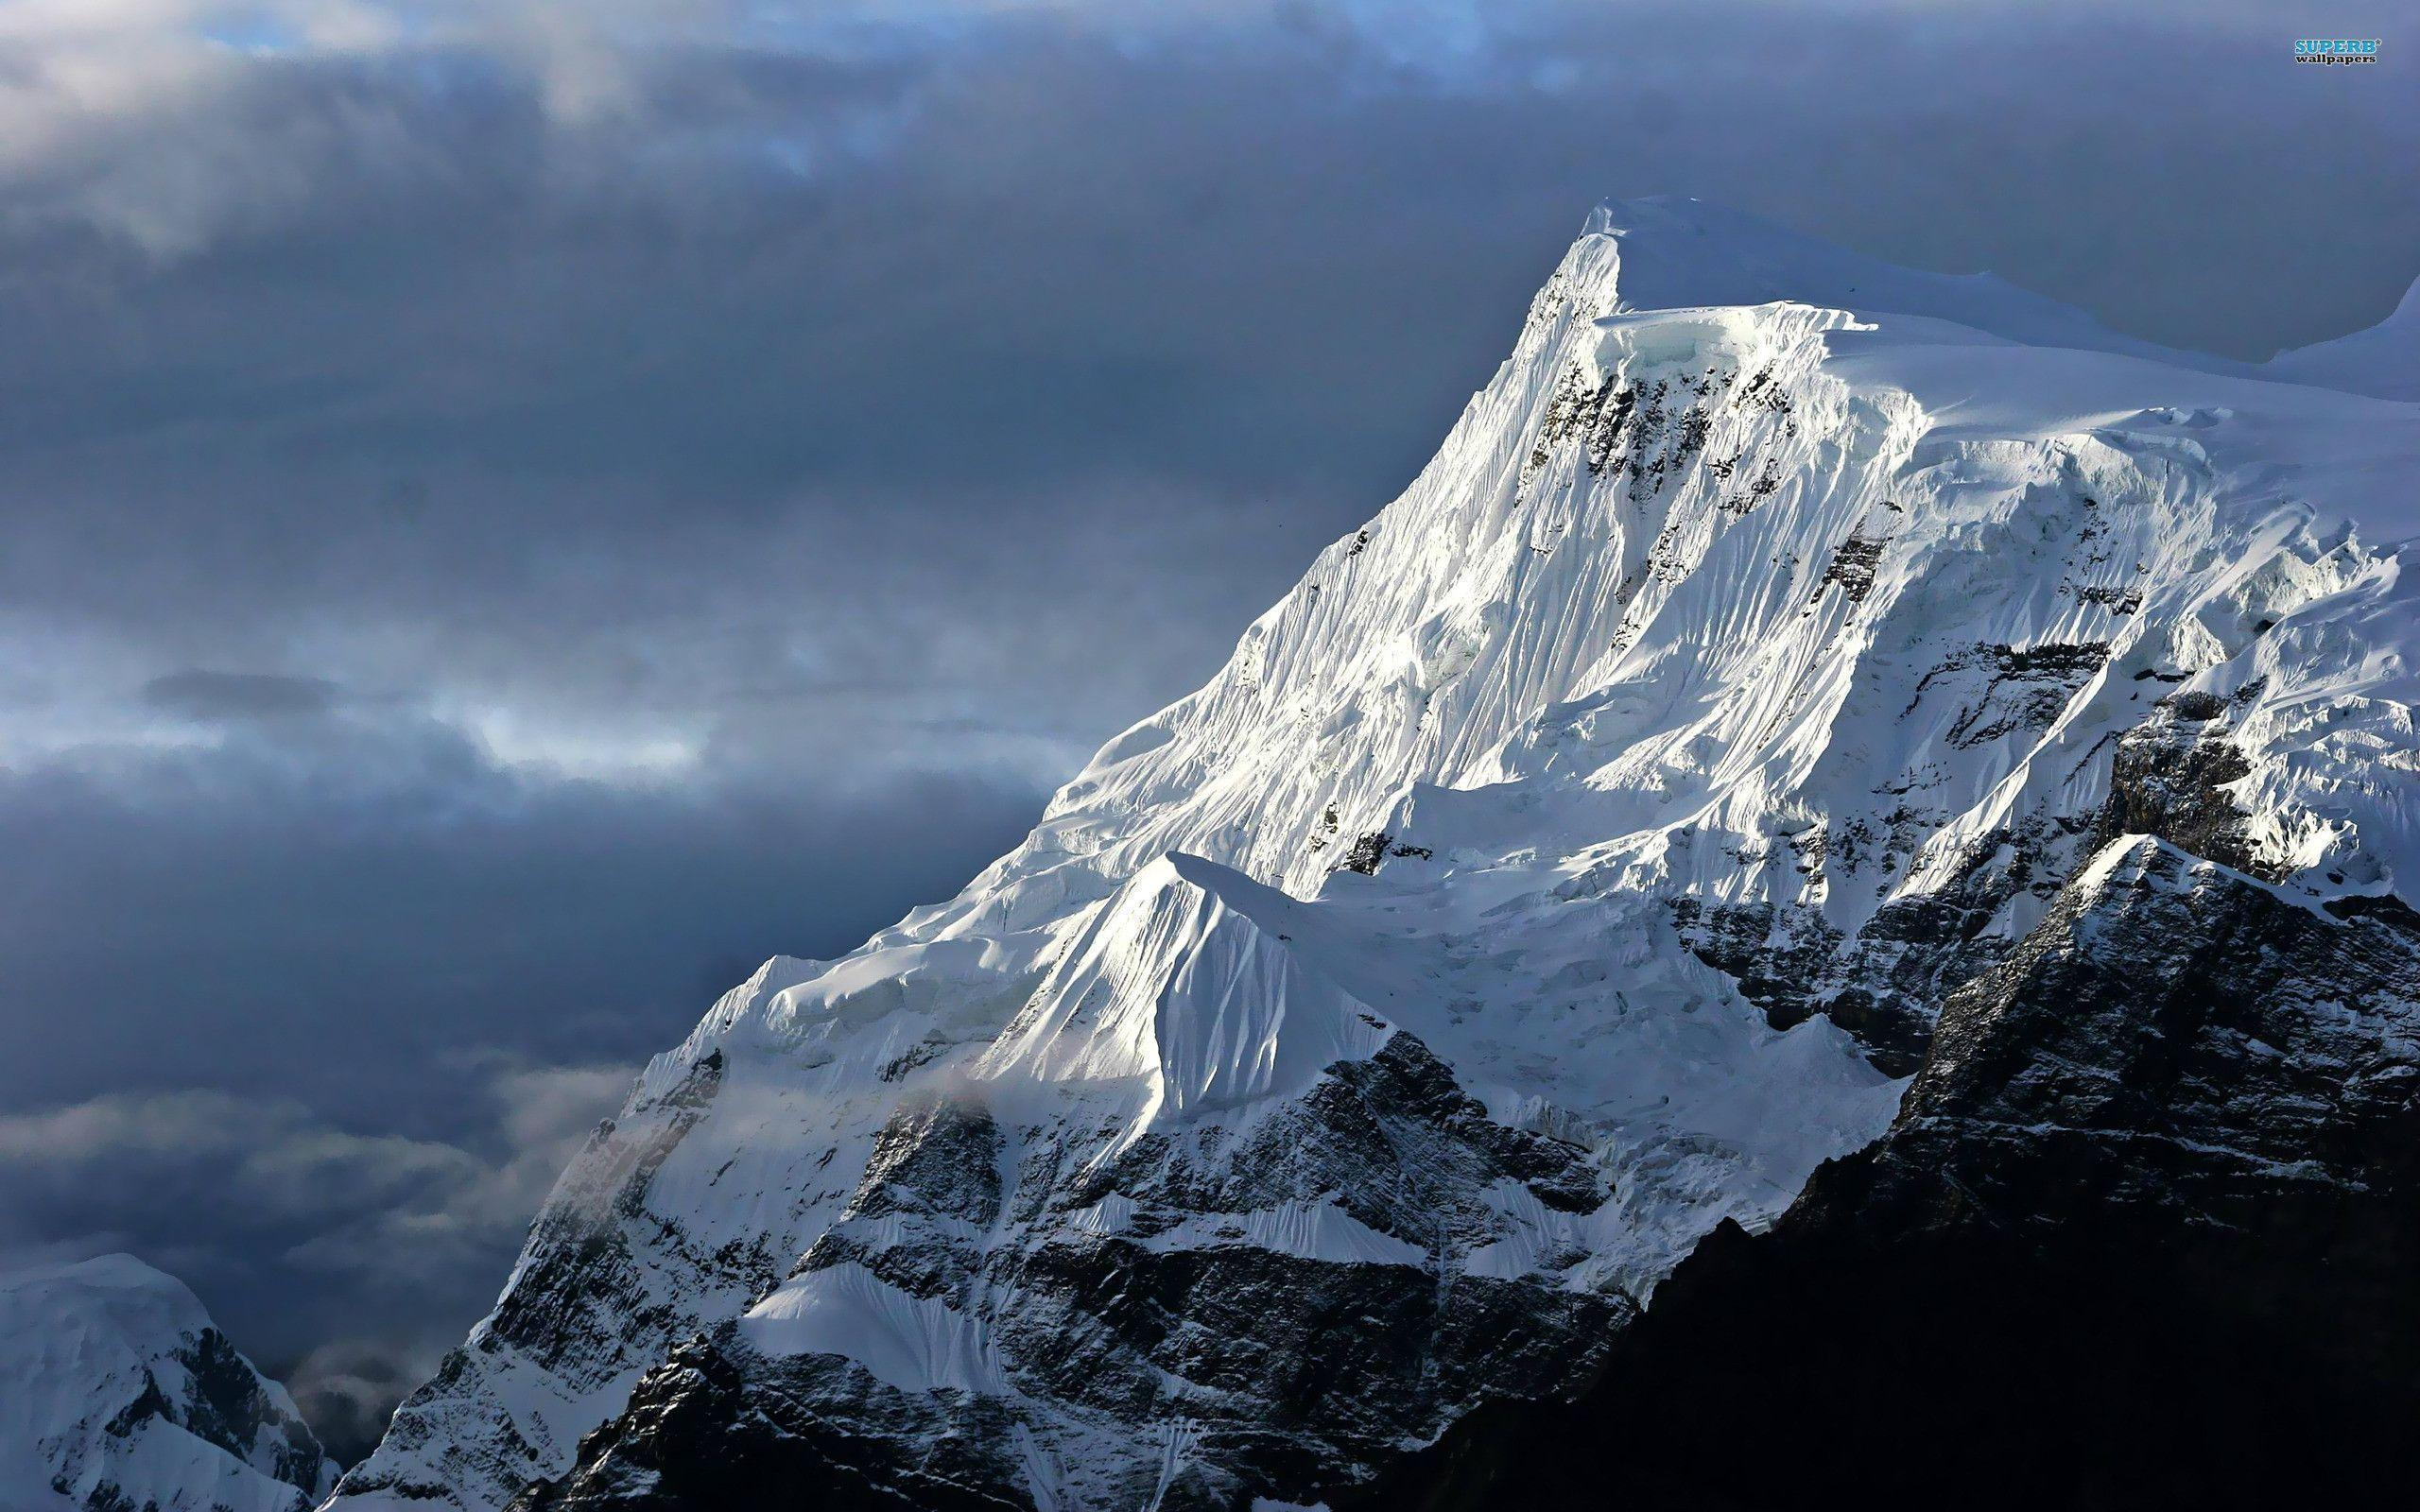 Snowy mountains wallpaper - Nature wallpapers - #